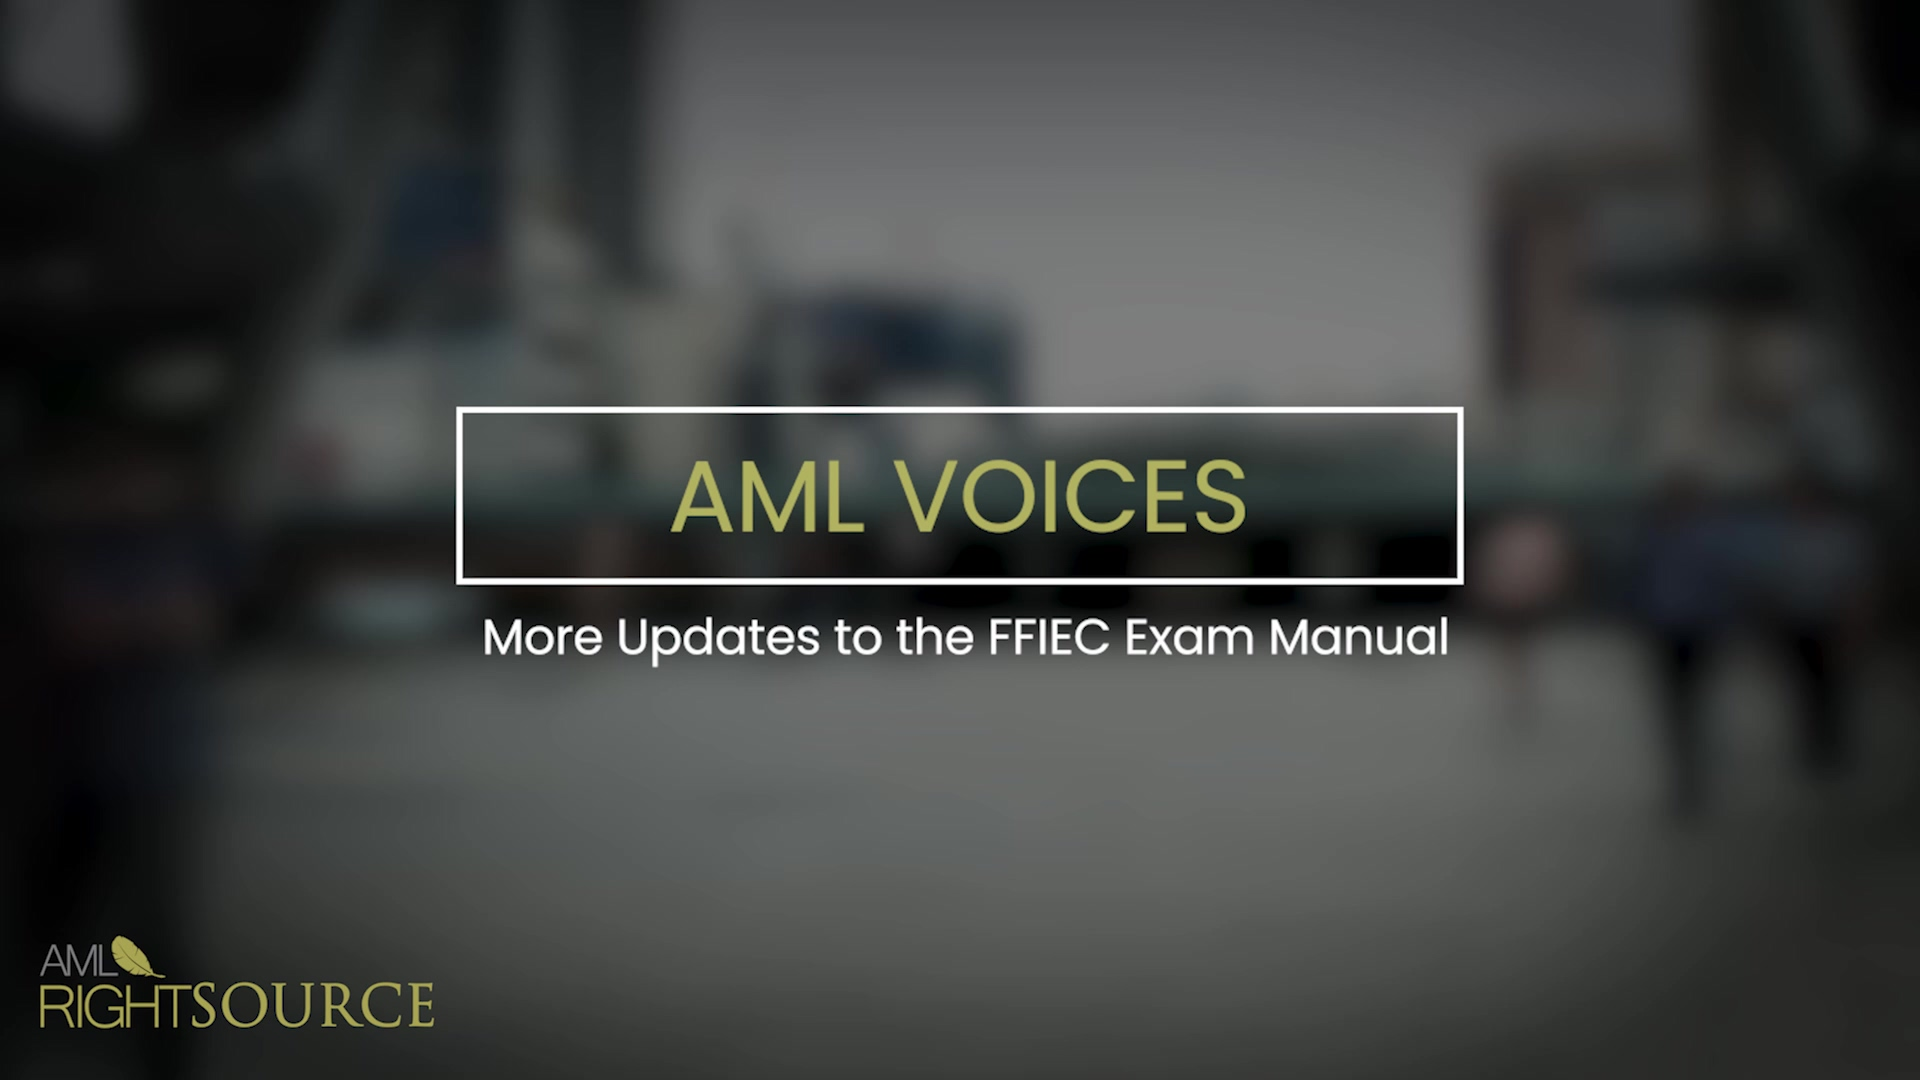 More Updates to the FFIEC Exam Manual